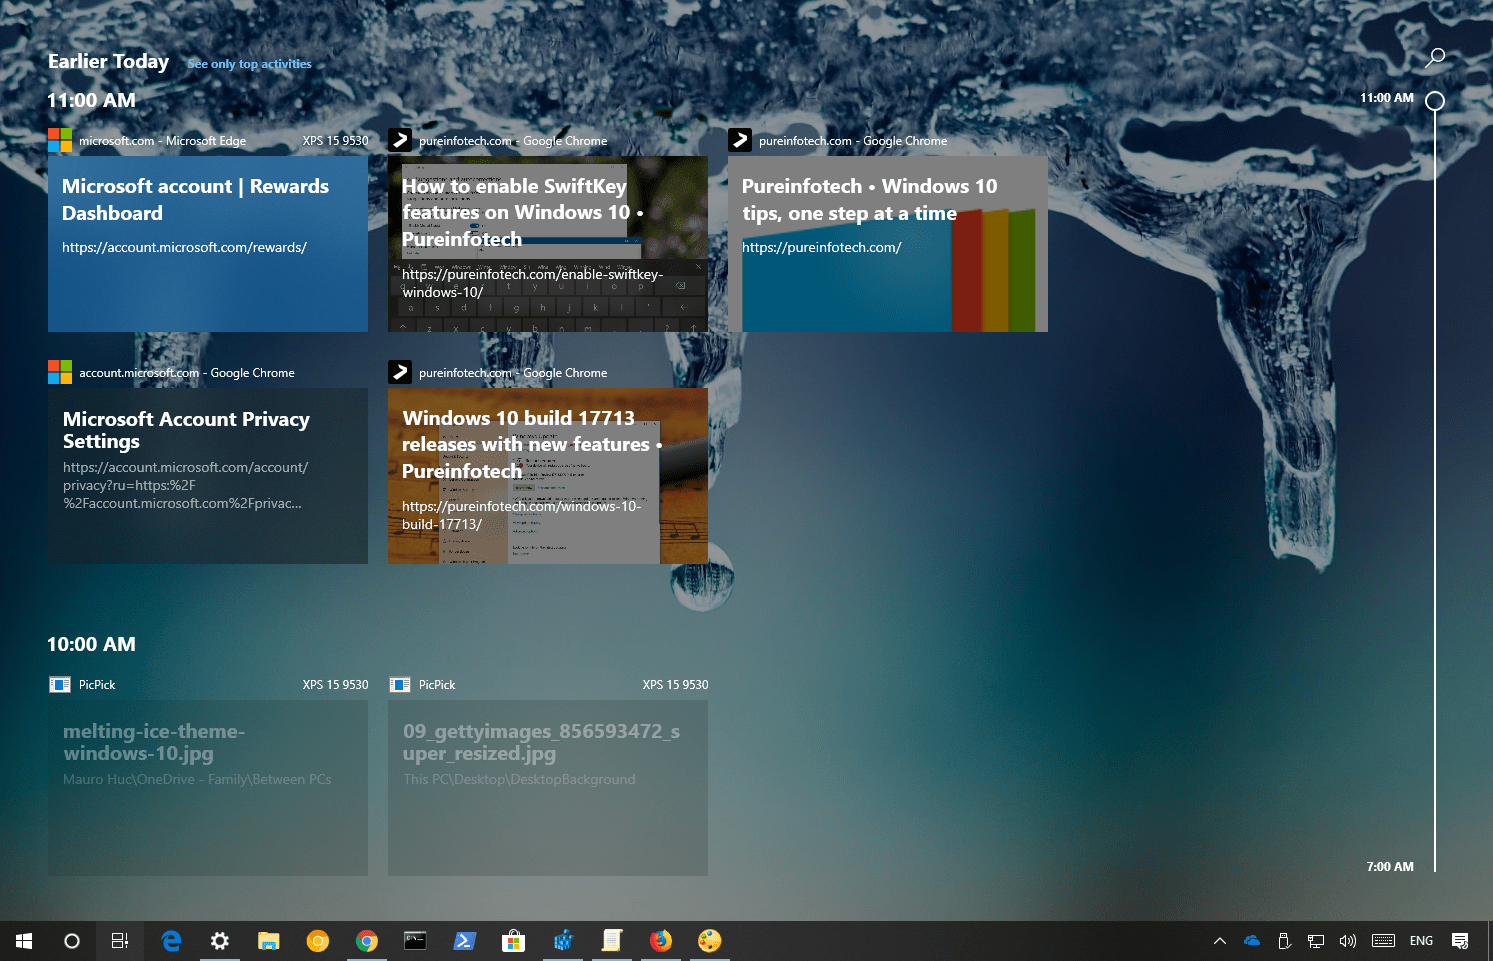 Chrome Windows 10 Timeline support